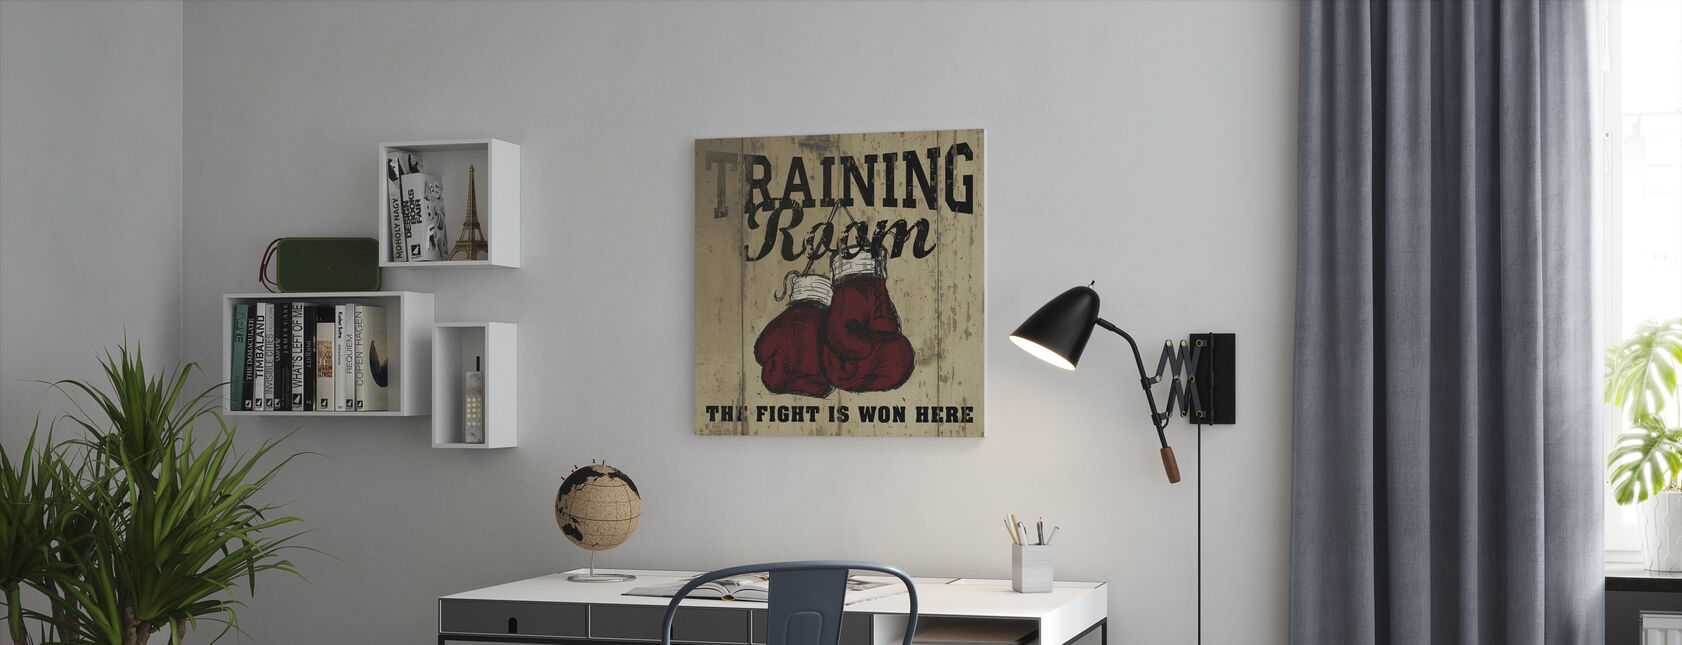 Training Room - Canvas print - Office